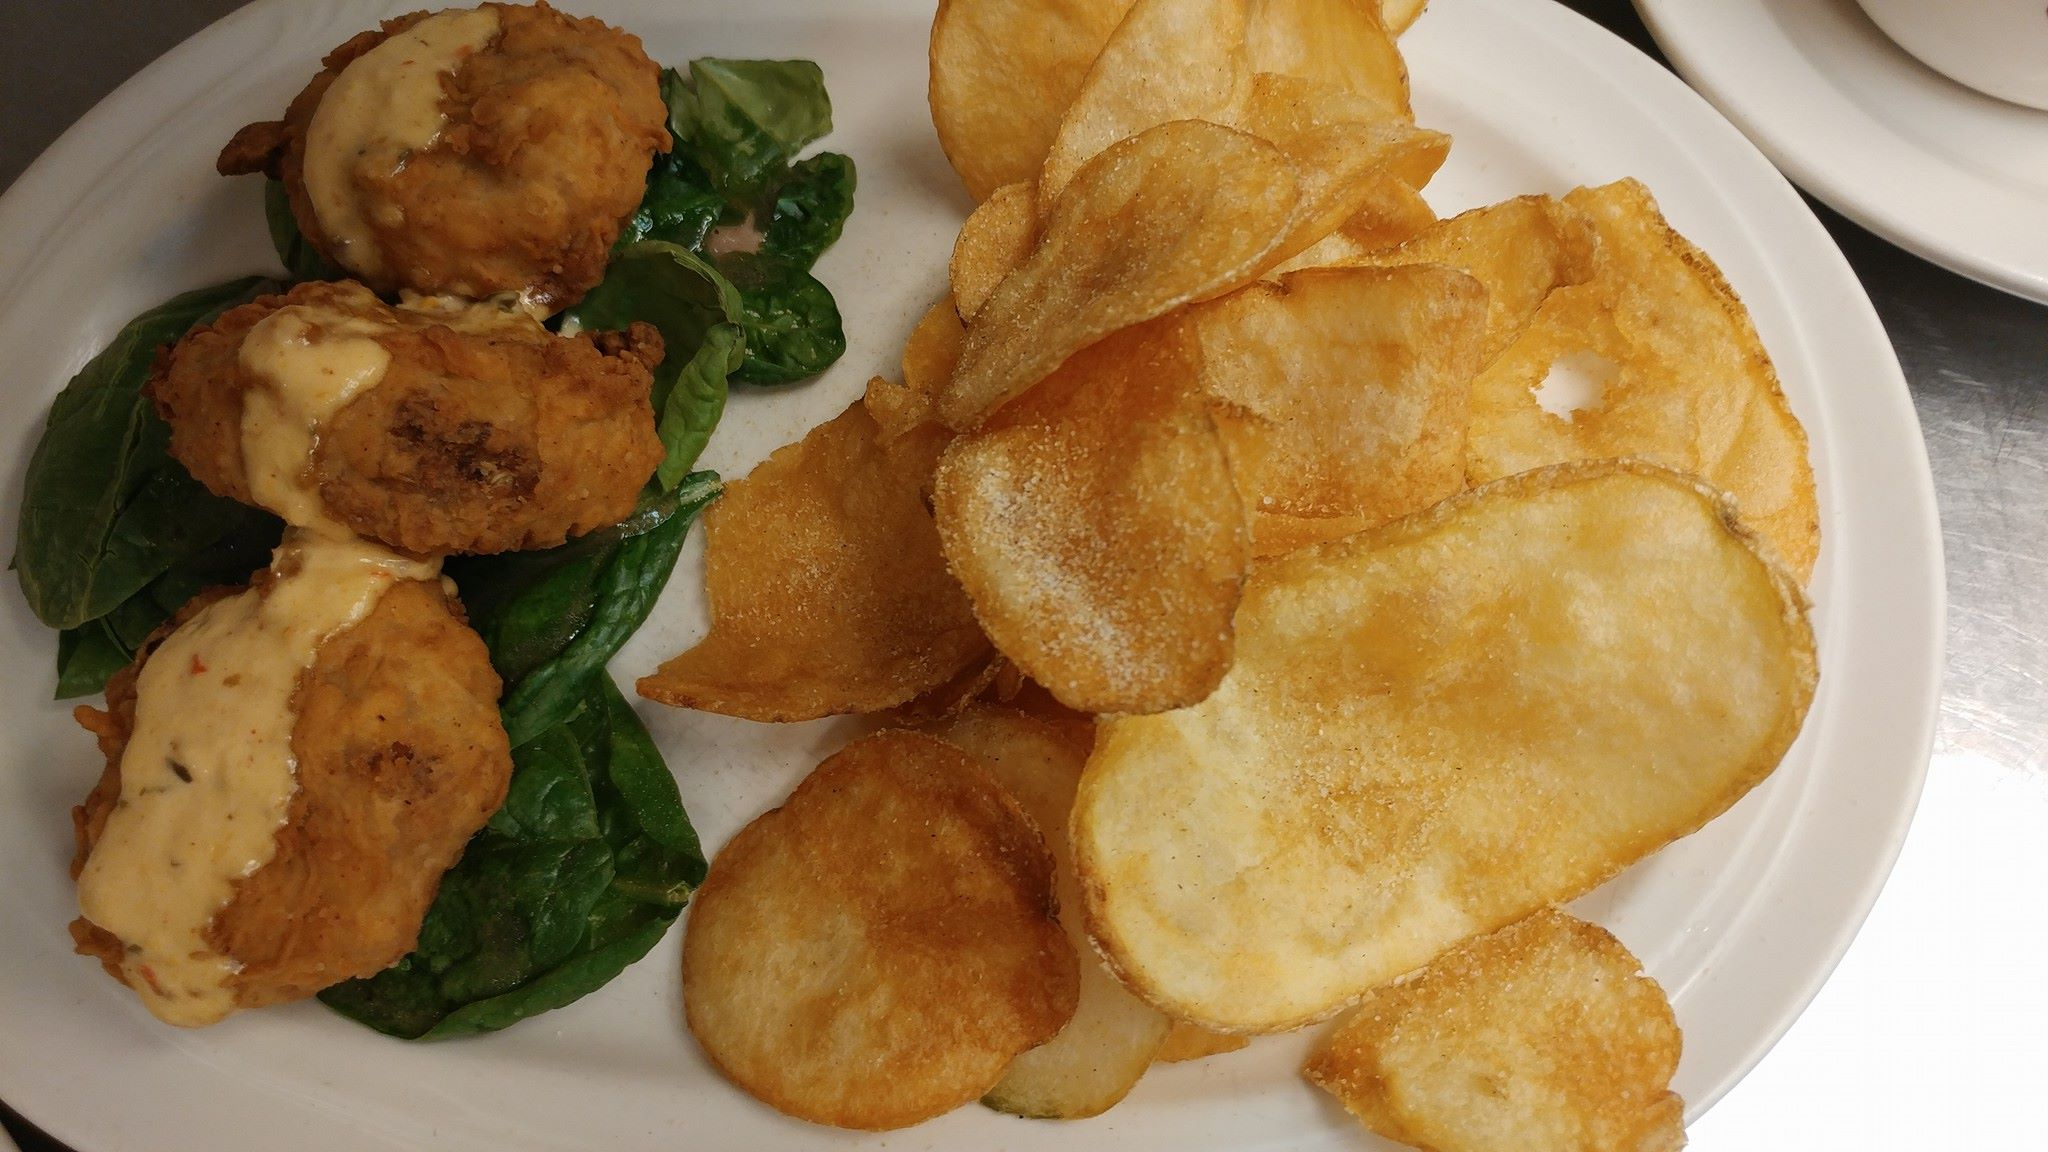 Fried portobello mushrooms. Lightly breaded and served with creamy ranch dressing, side of potato chips.